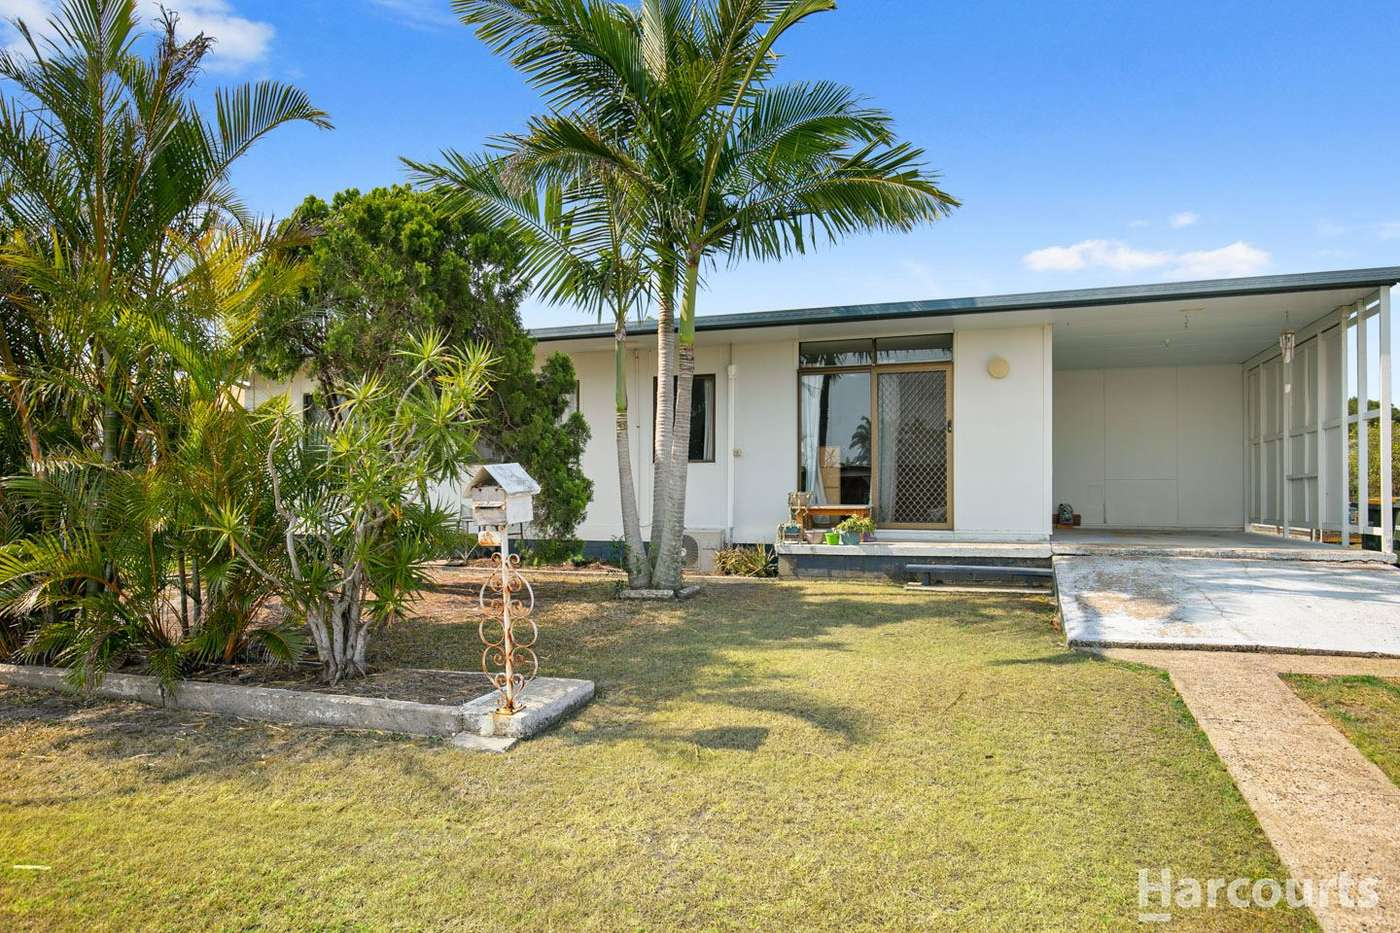 Main view of Homely house listing, 13 Jack Street, Pialba, QLD 4655